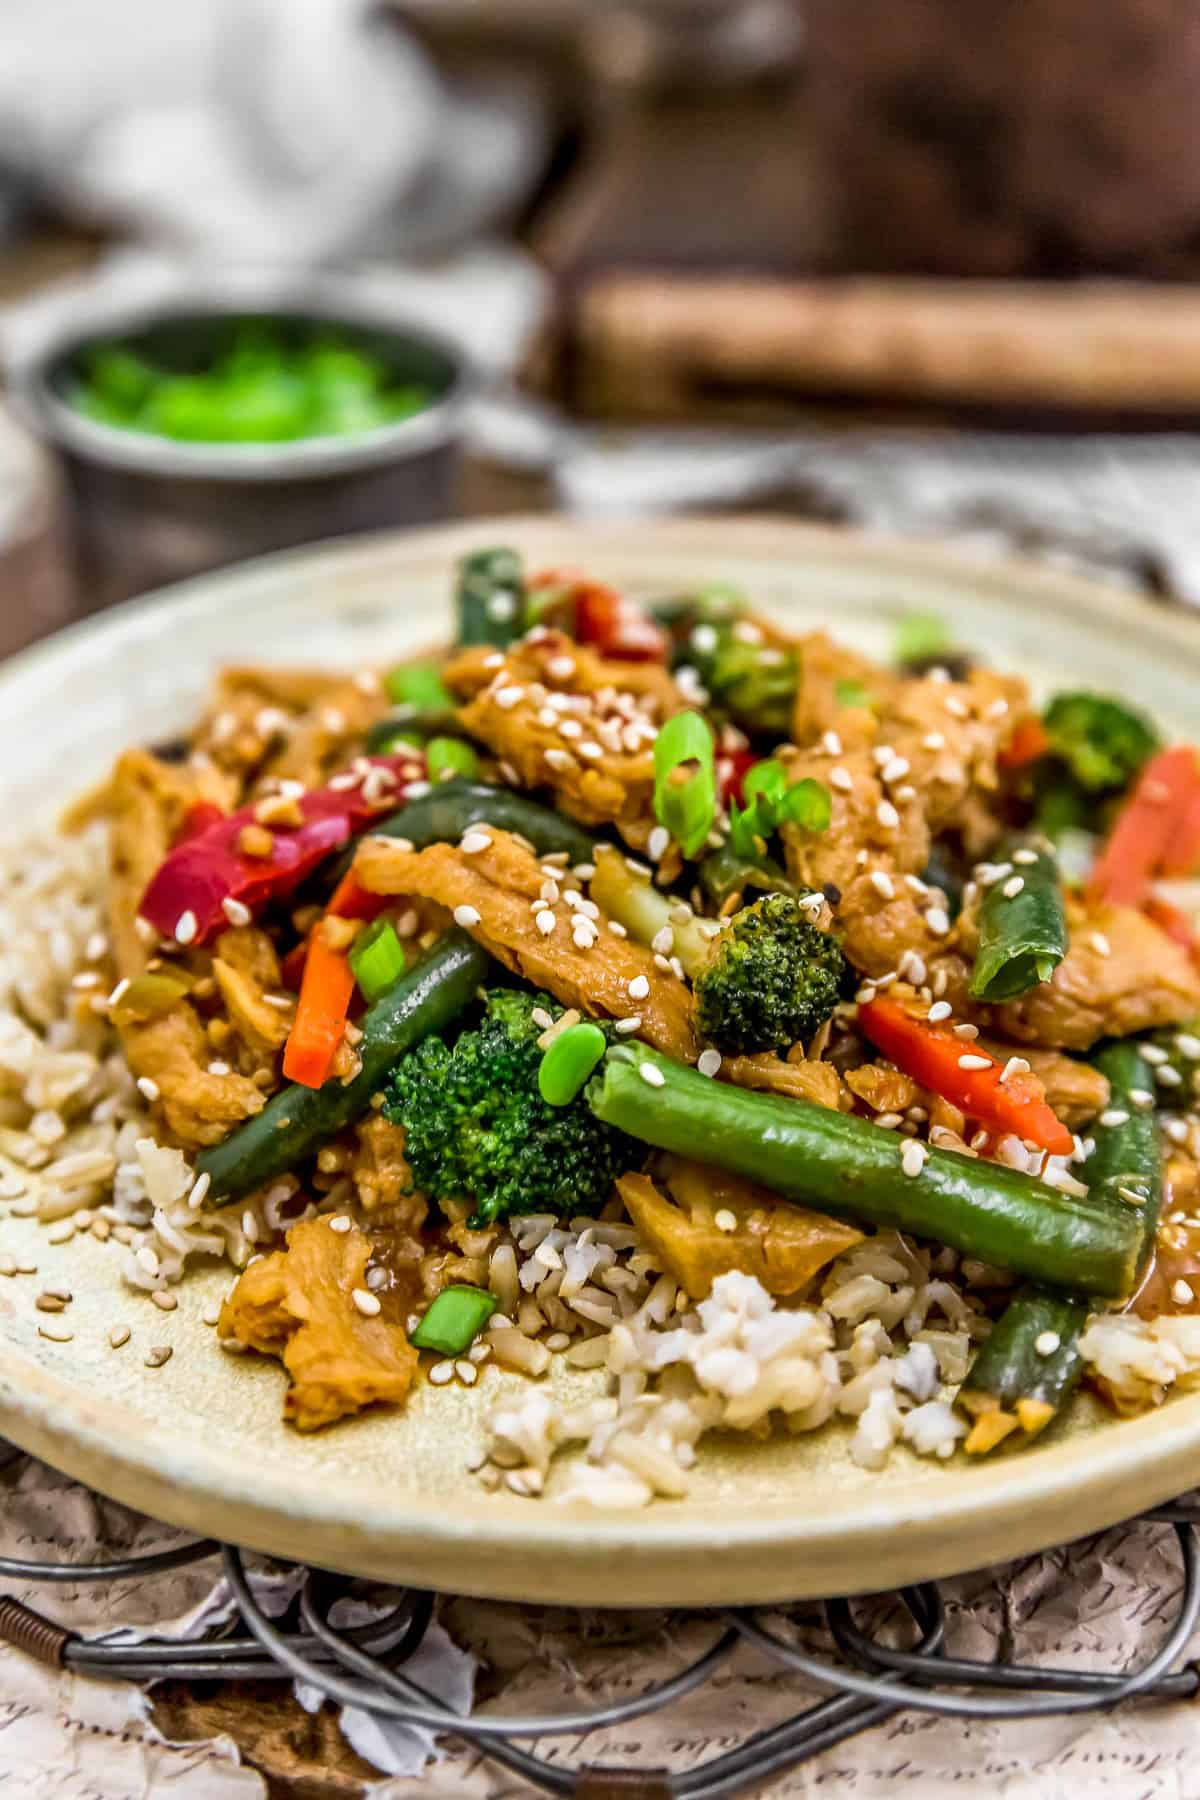 Close up of Vegan Spicy Honey Garlic Stir Fry